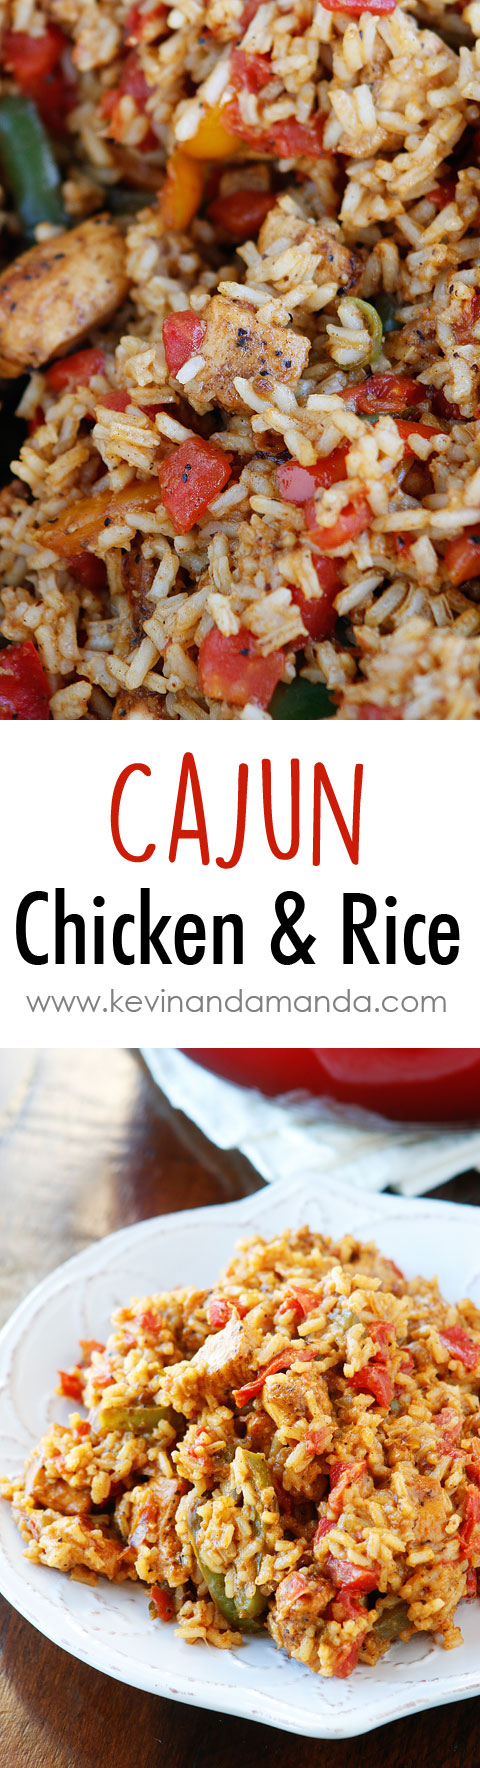 Cajun Chicken And Rice One Of Our Favorite Cajun Food Recipes